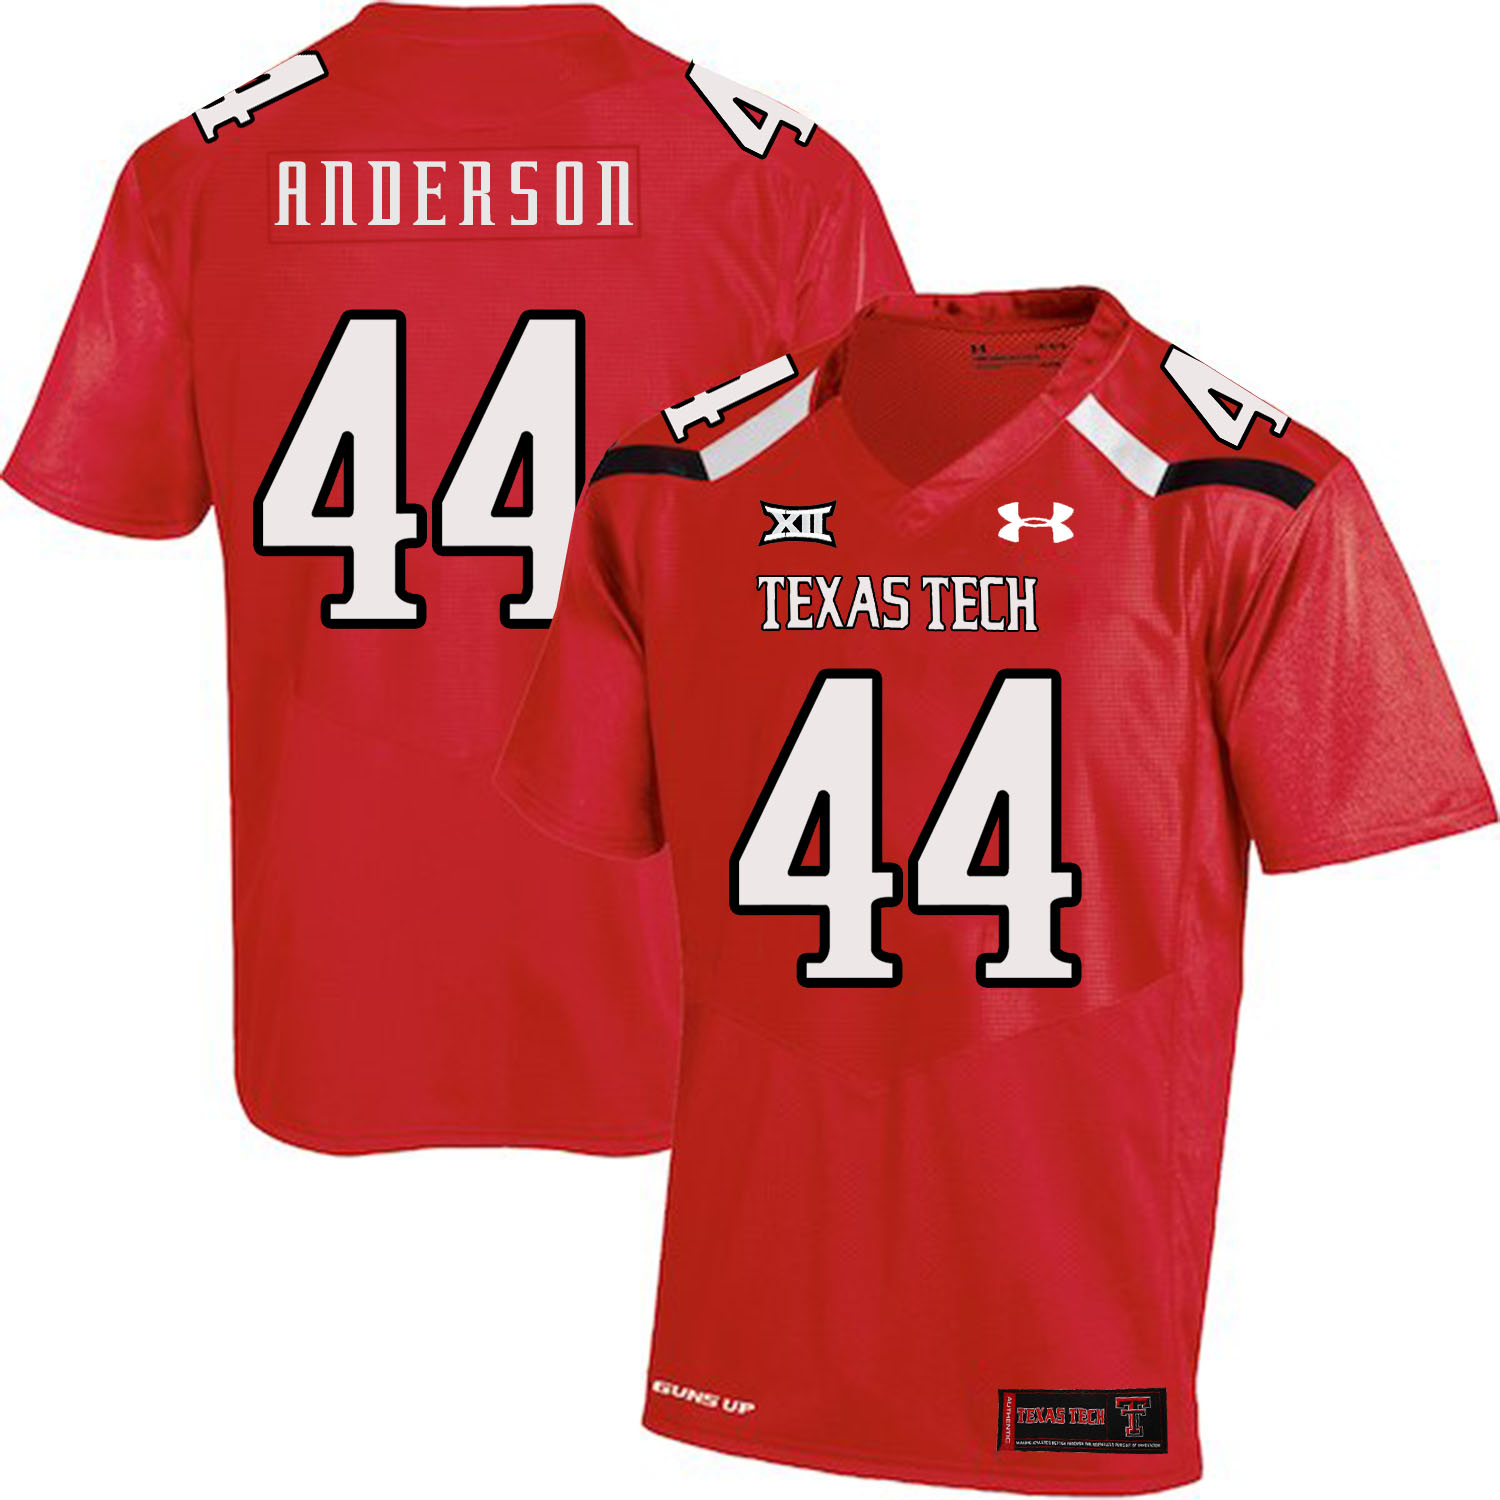 Texas Tech Red Raiders 44 Donny Anderson Red College Football Jersey